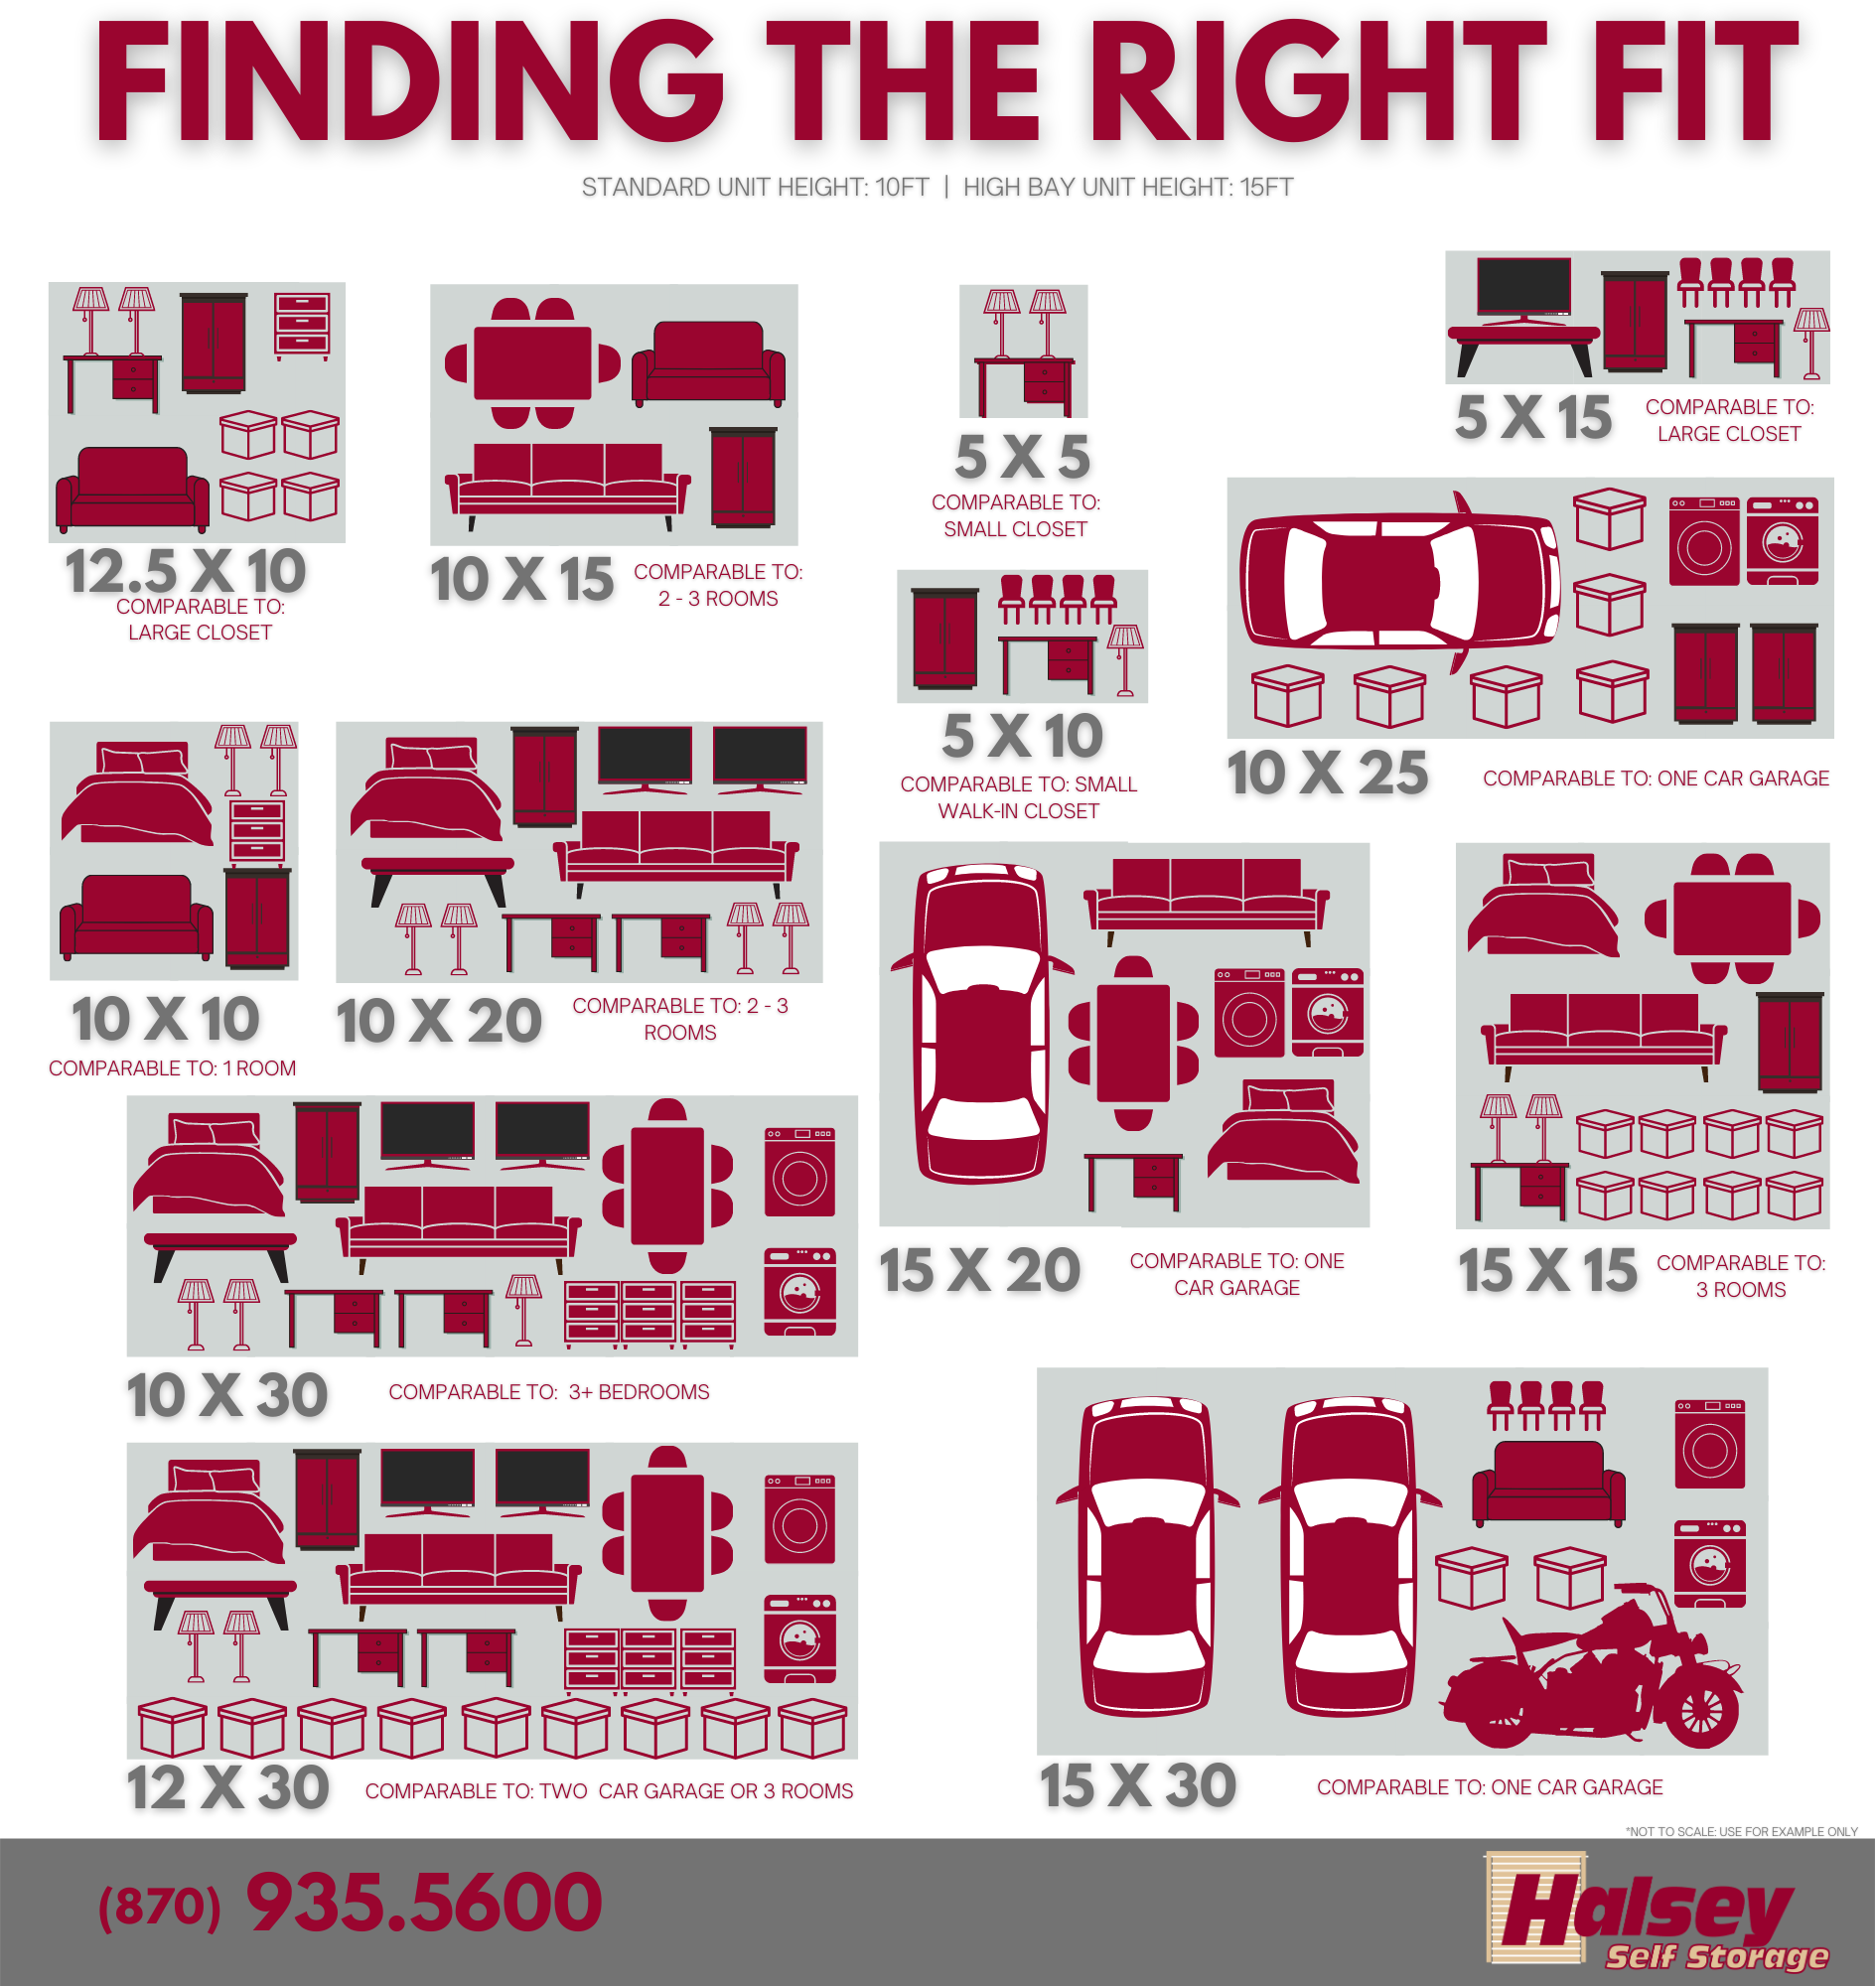 Finding the Right Fit